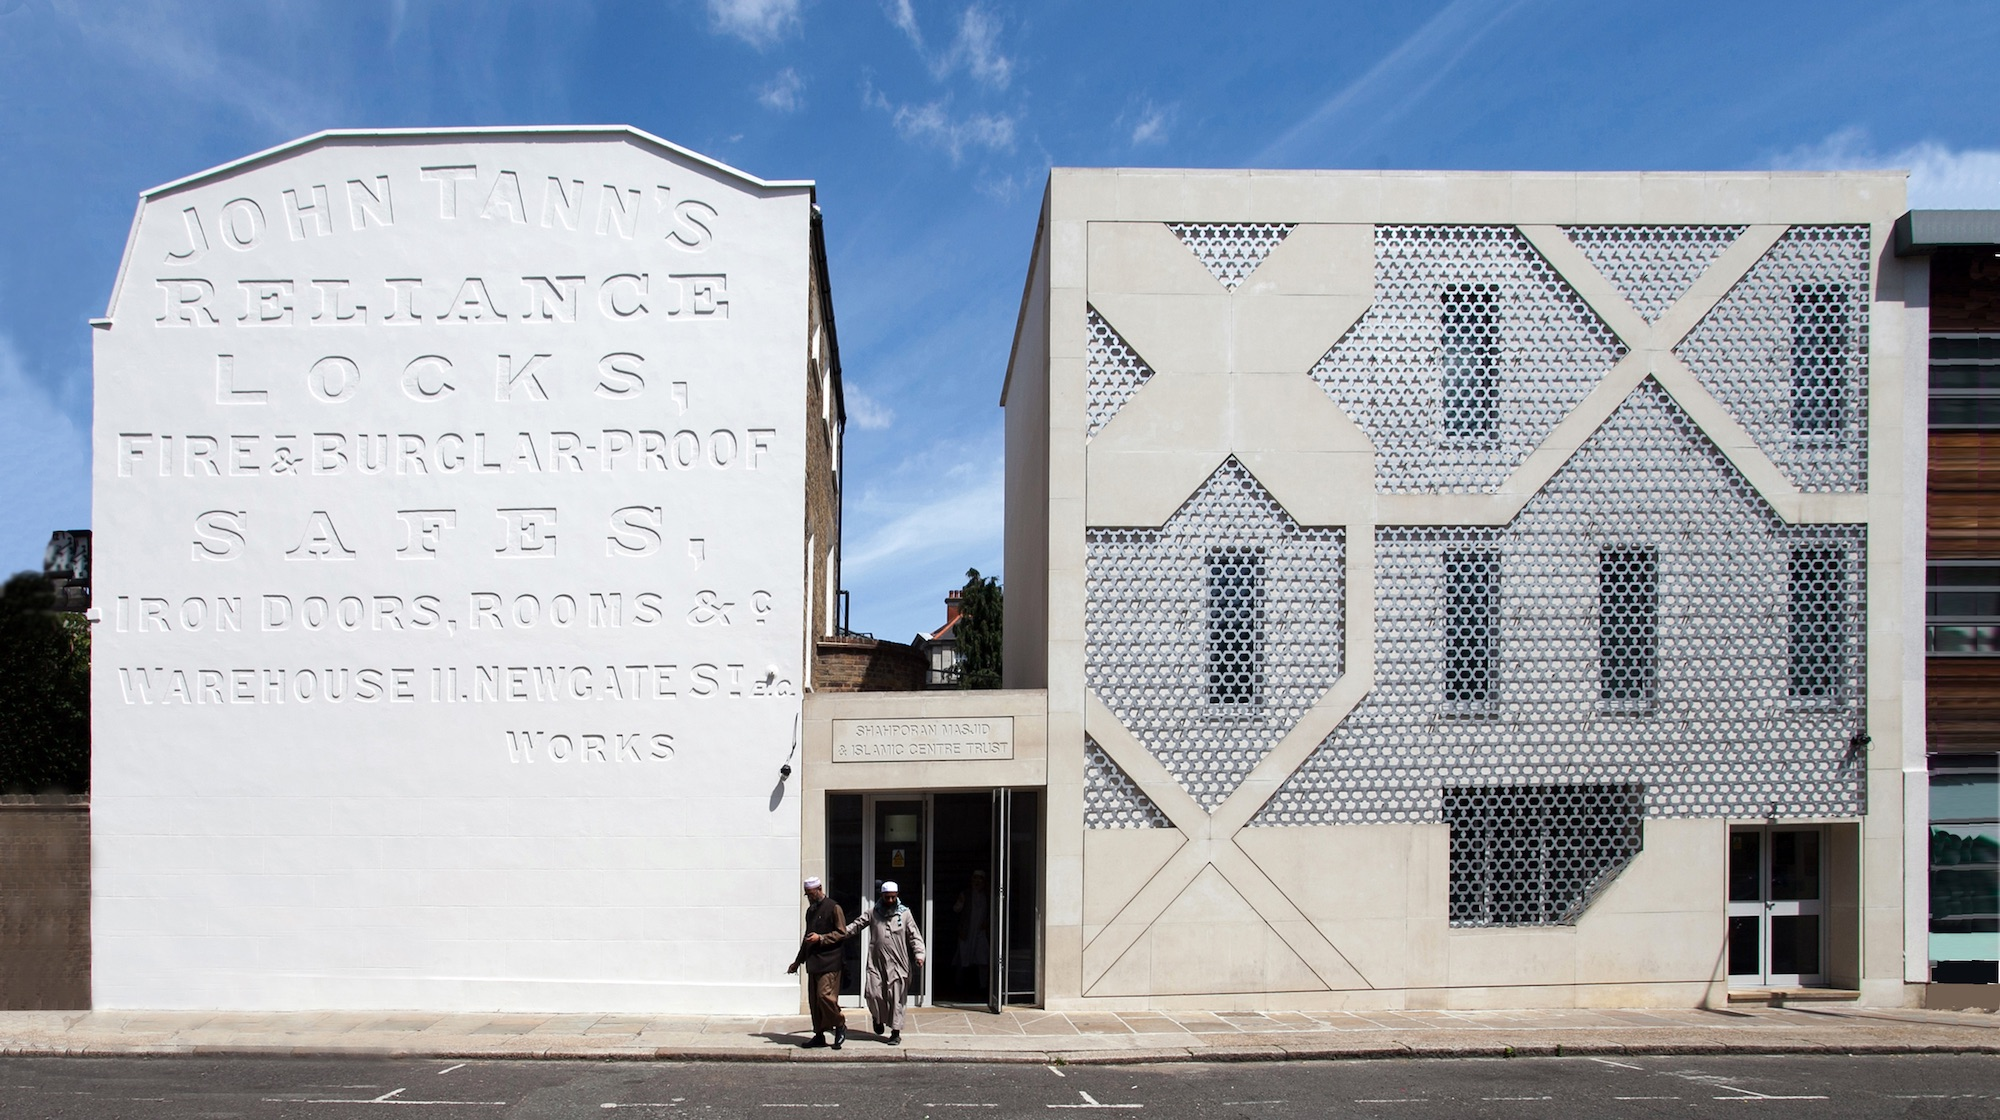 Shahporan Masjid and Islamic Centre Trust on Hackney Road, designed by Shahed Saleem